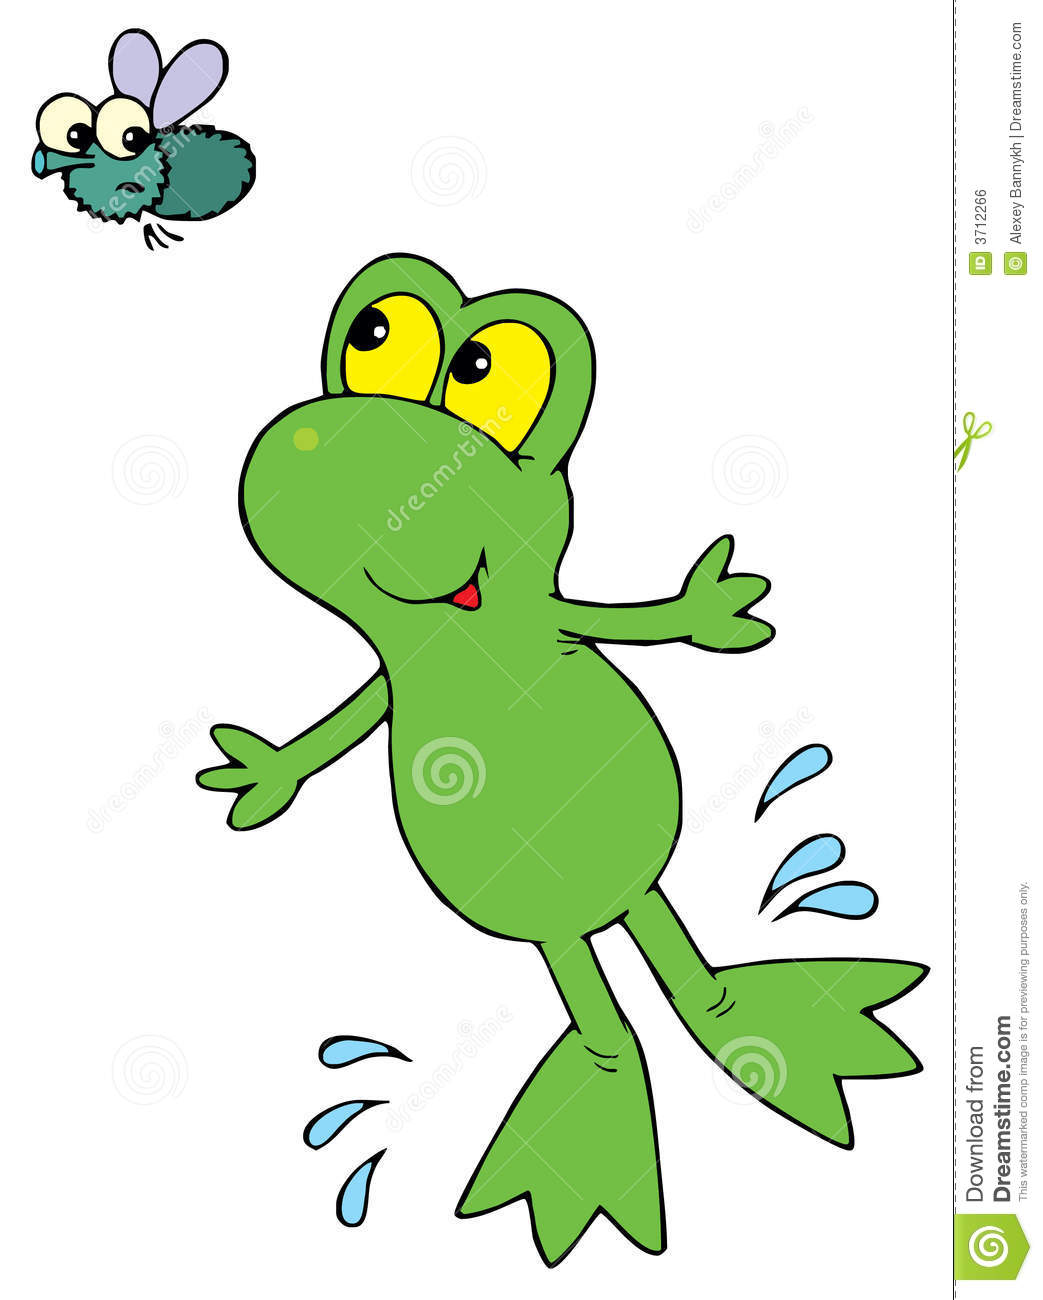 Green Frog  Vector Clip Art  Royalty Free Stock Image   Image  3712266